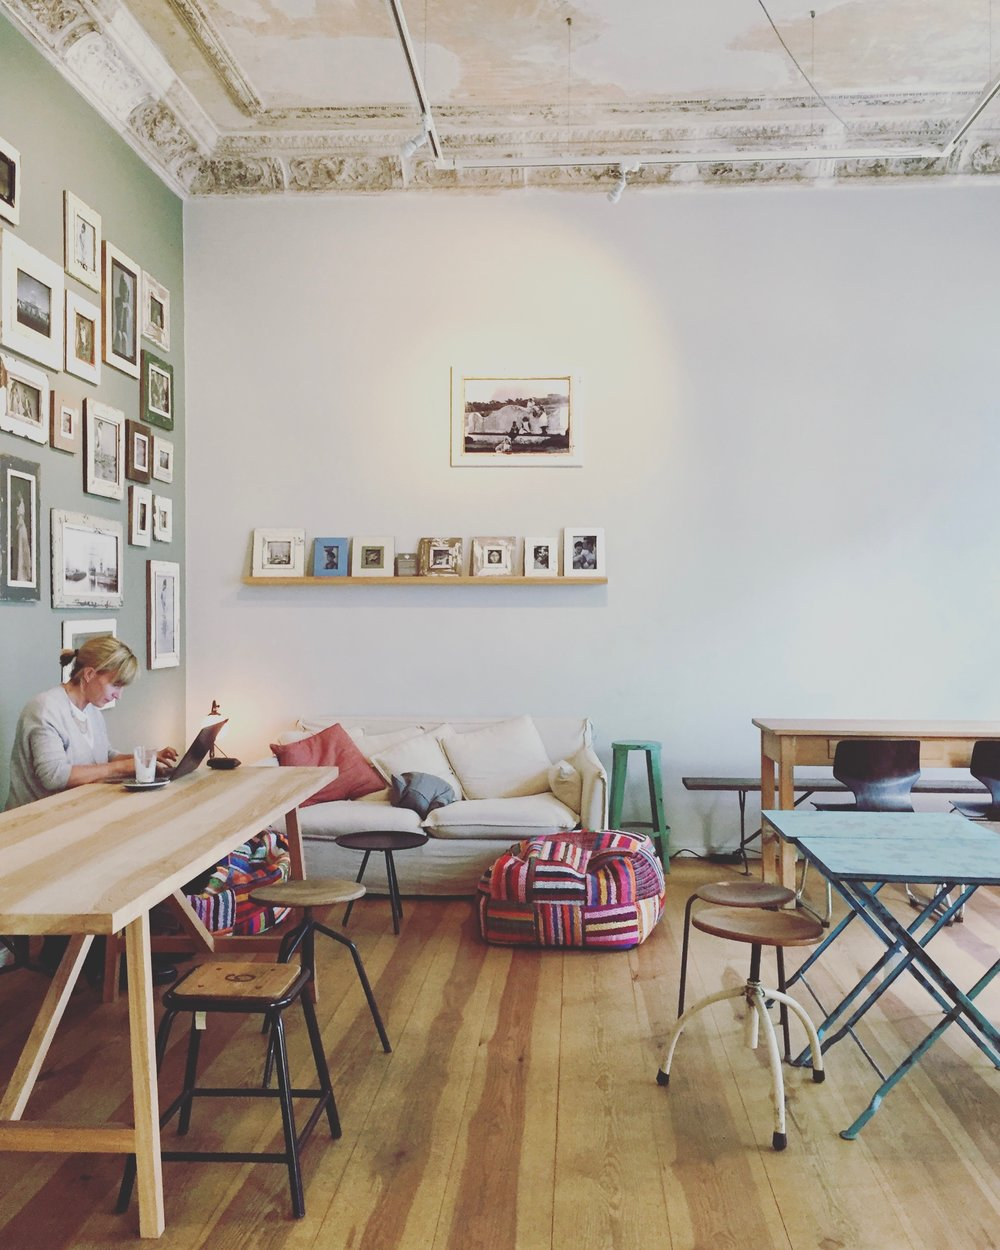 A sweet little South African bakery called  Coffee Room.